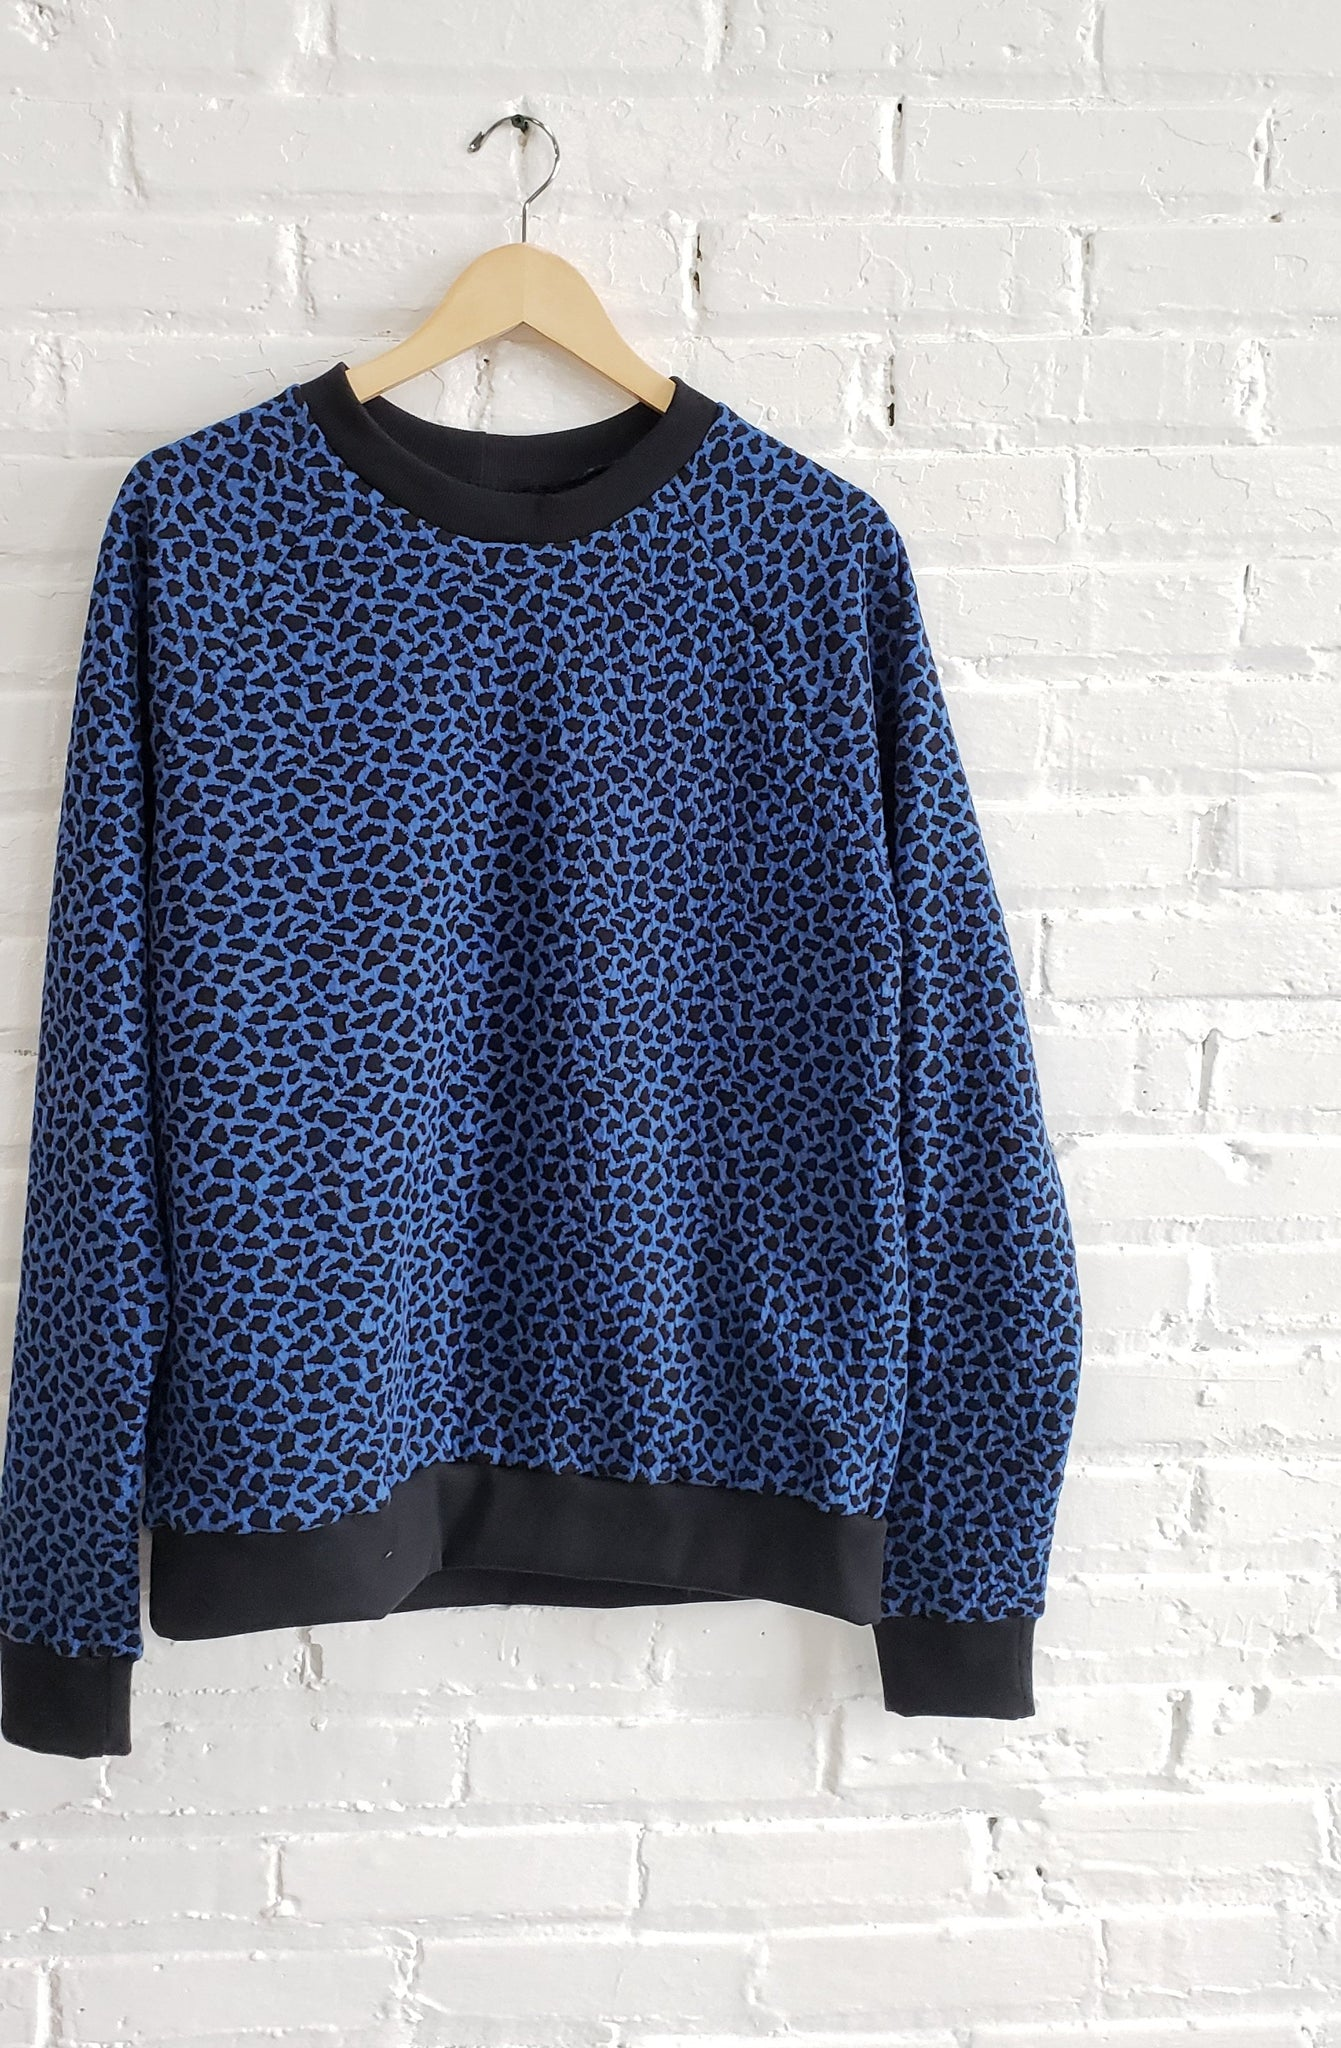 bright blue sweatshirt with black cuffs and cheetah spots, displayed on wooden hanger against white brick wall